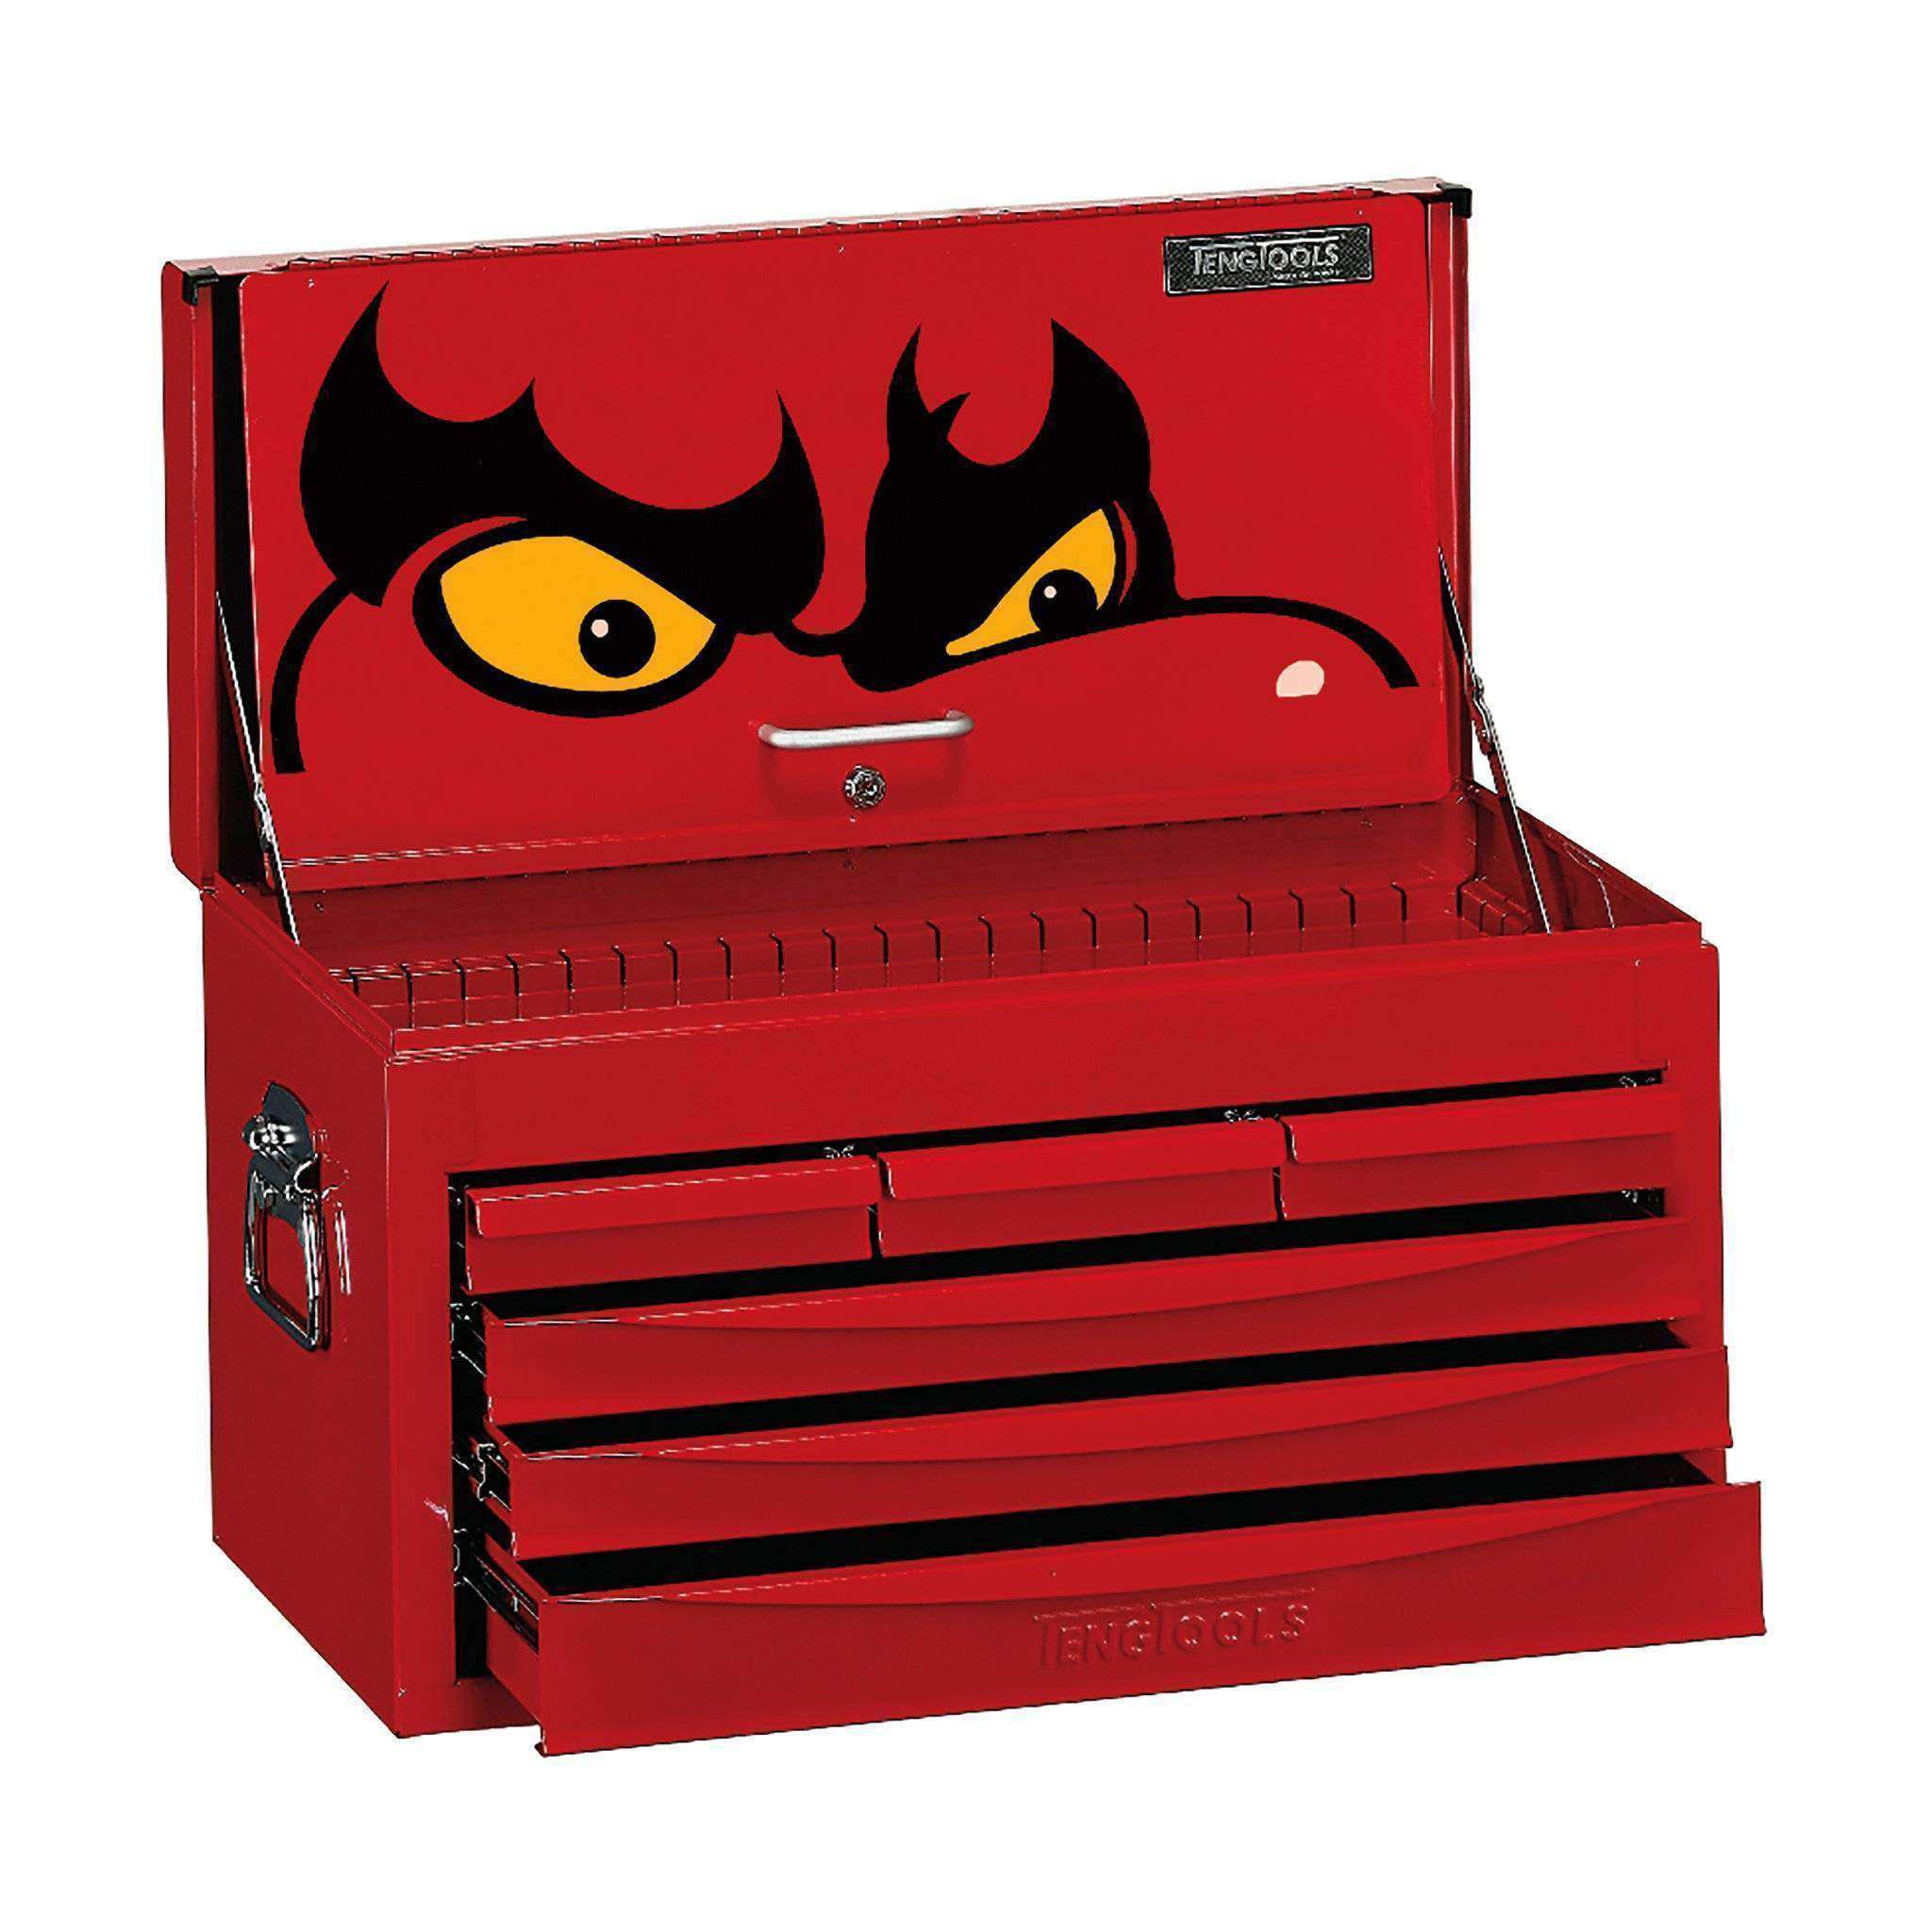 Teng Tools TC806SV - 6 Drawer 8 Series SV Top Box - Teng Tools USA